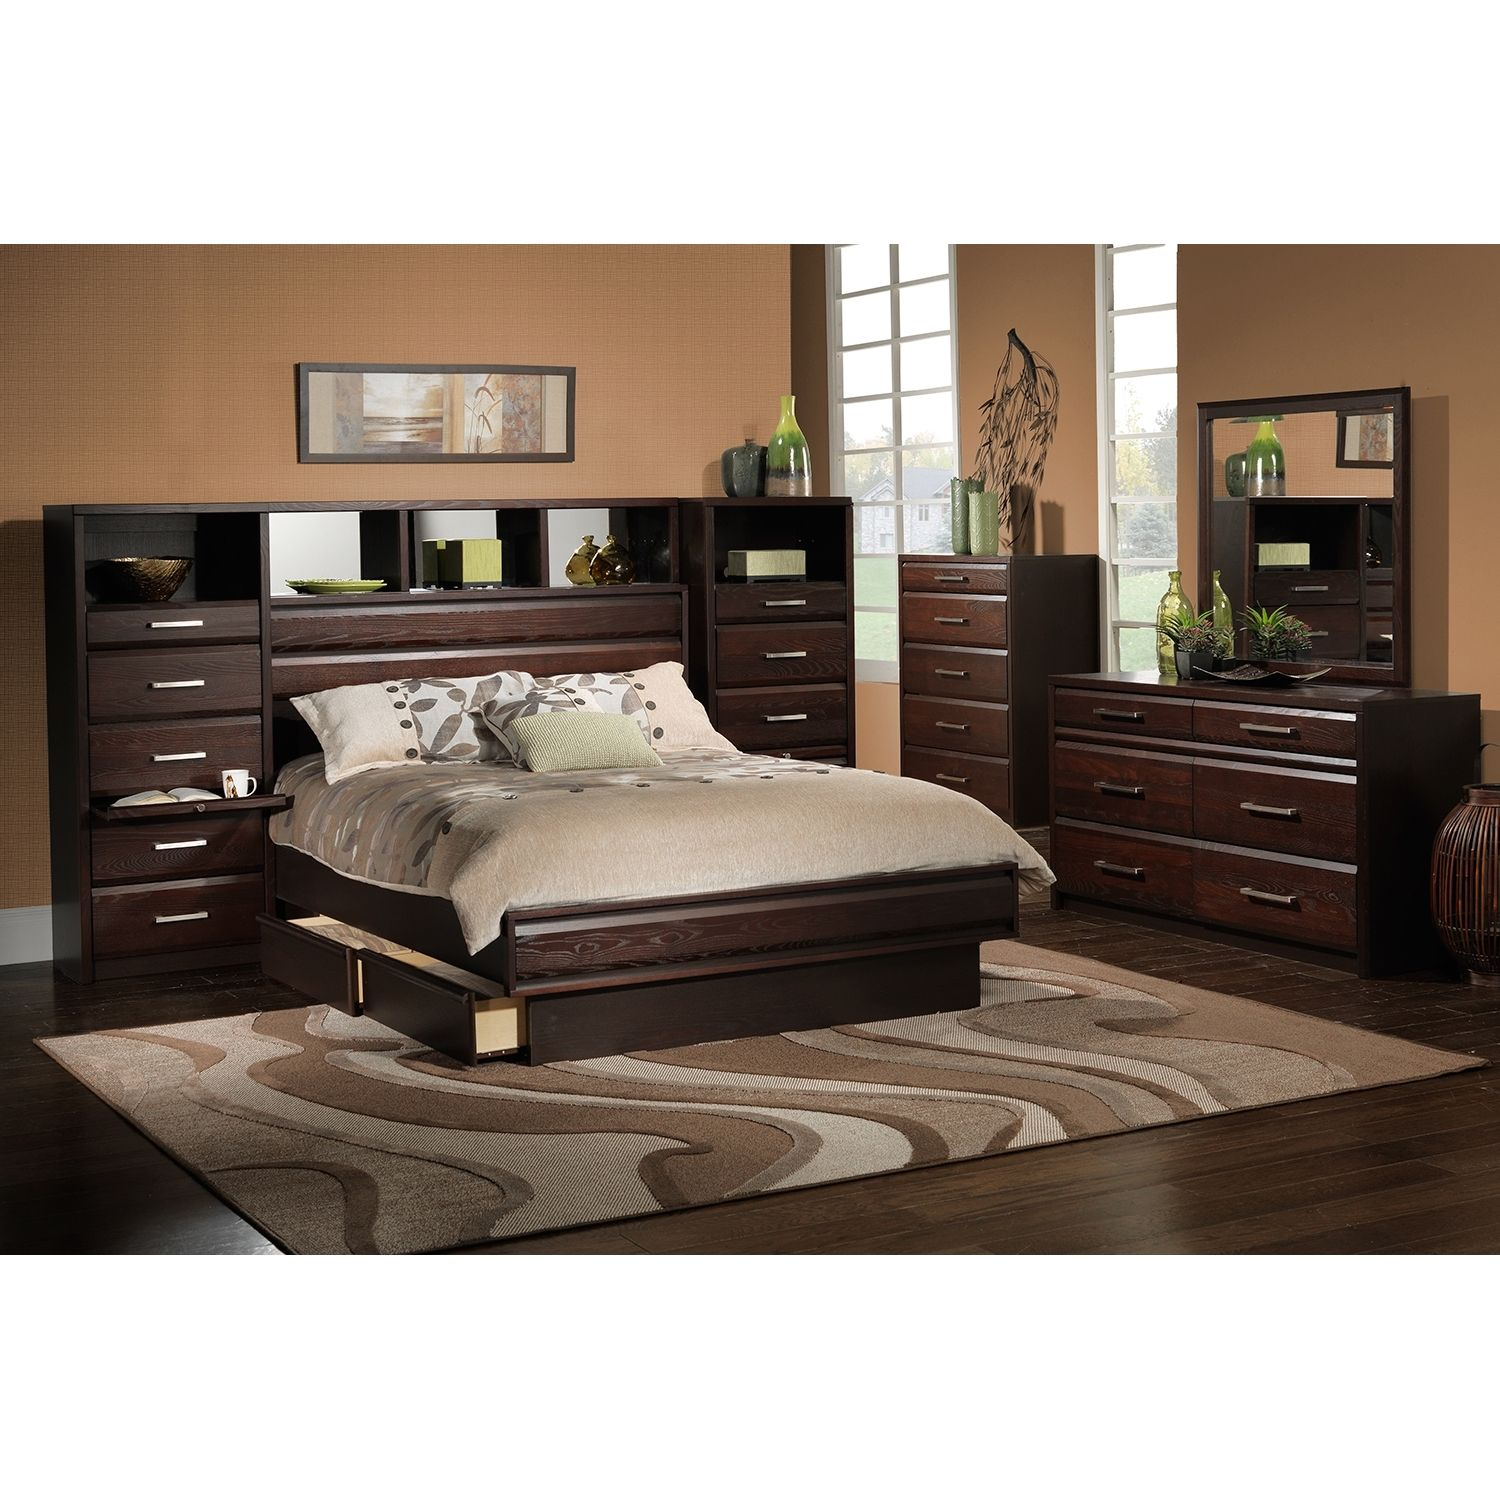 bedroom furniture tango queen wall bed - Pier Wall Bedroom Furniture